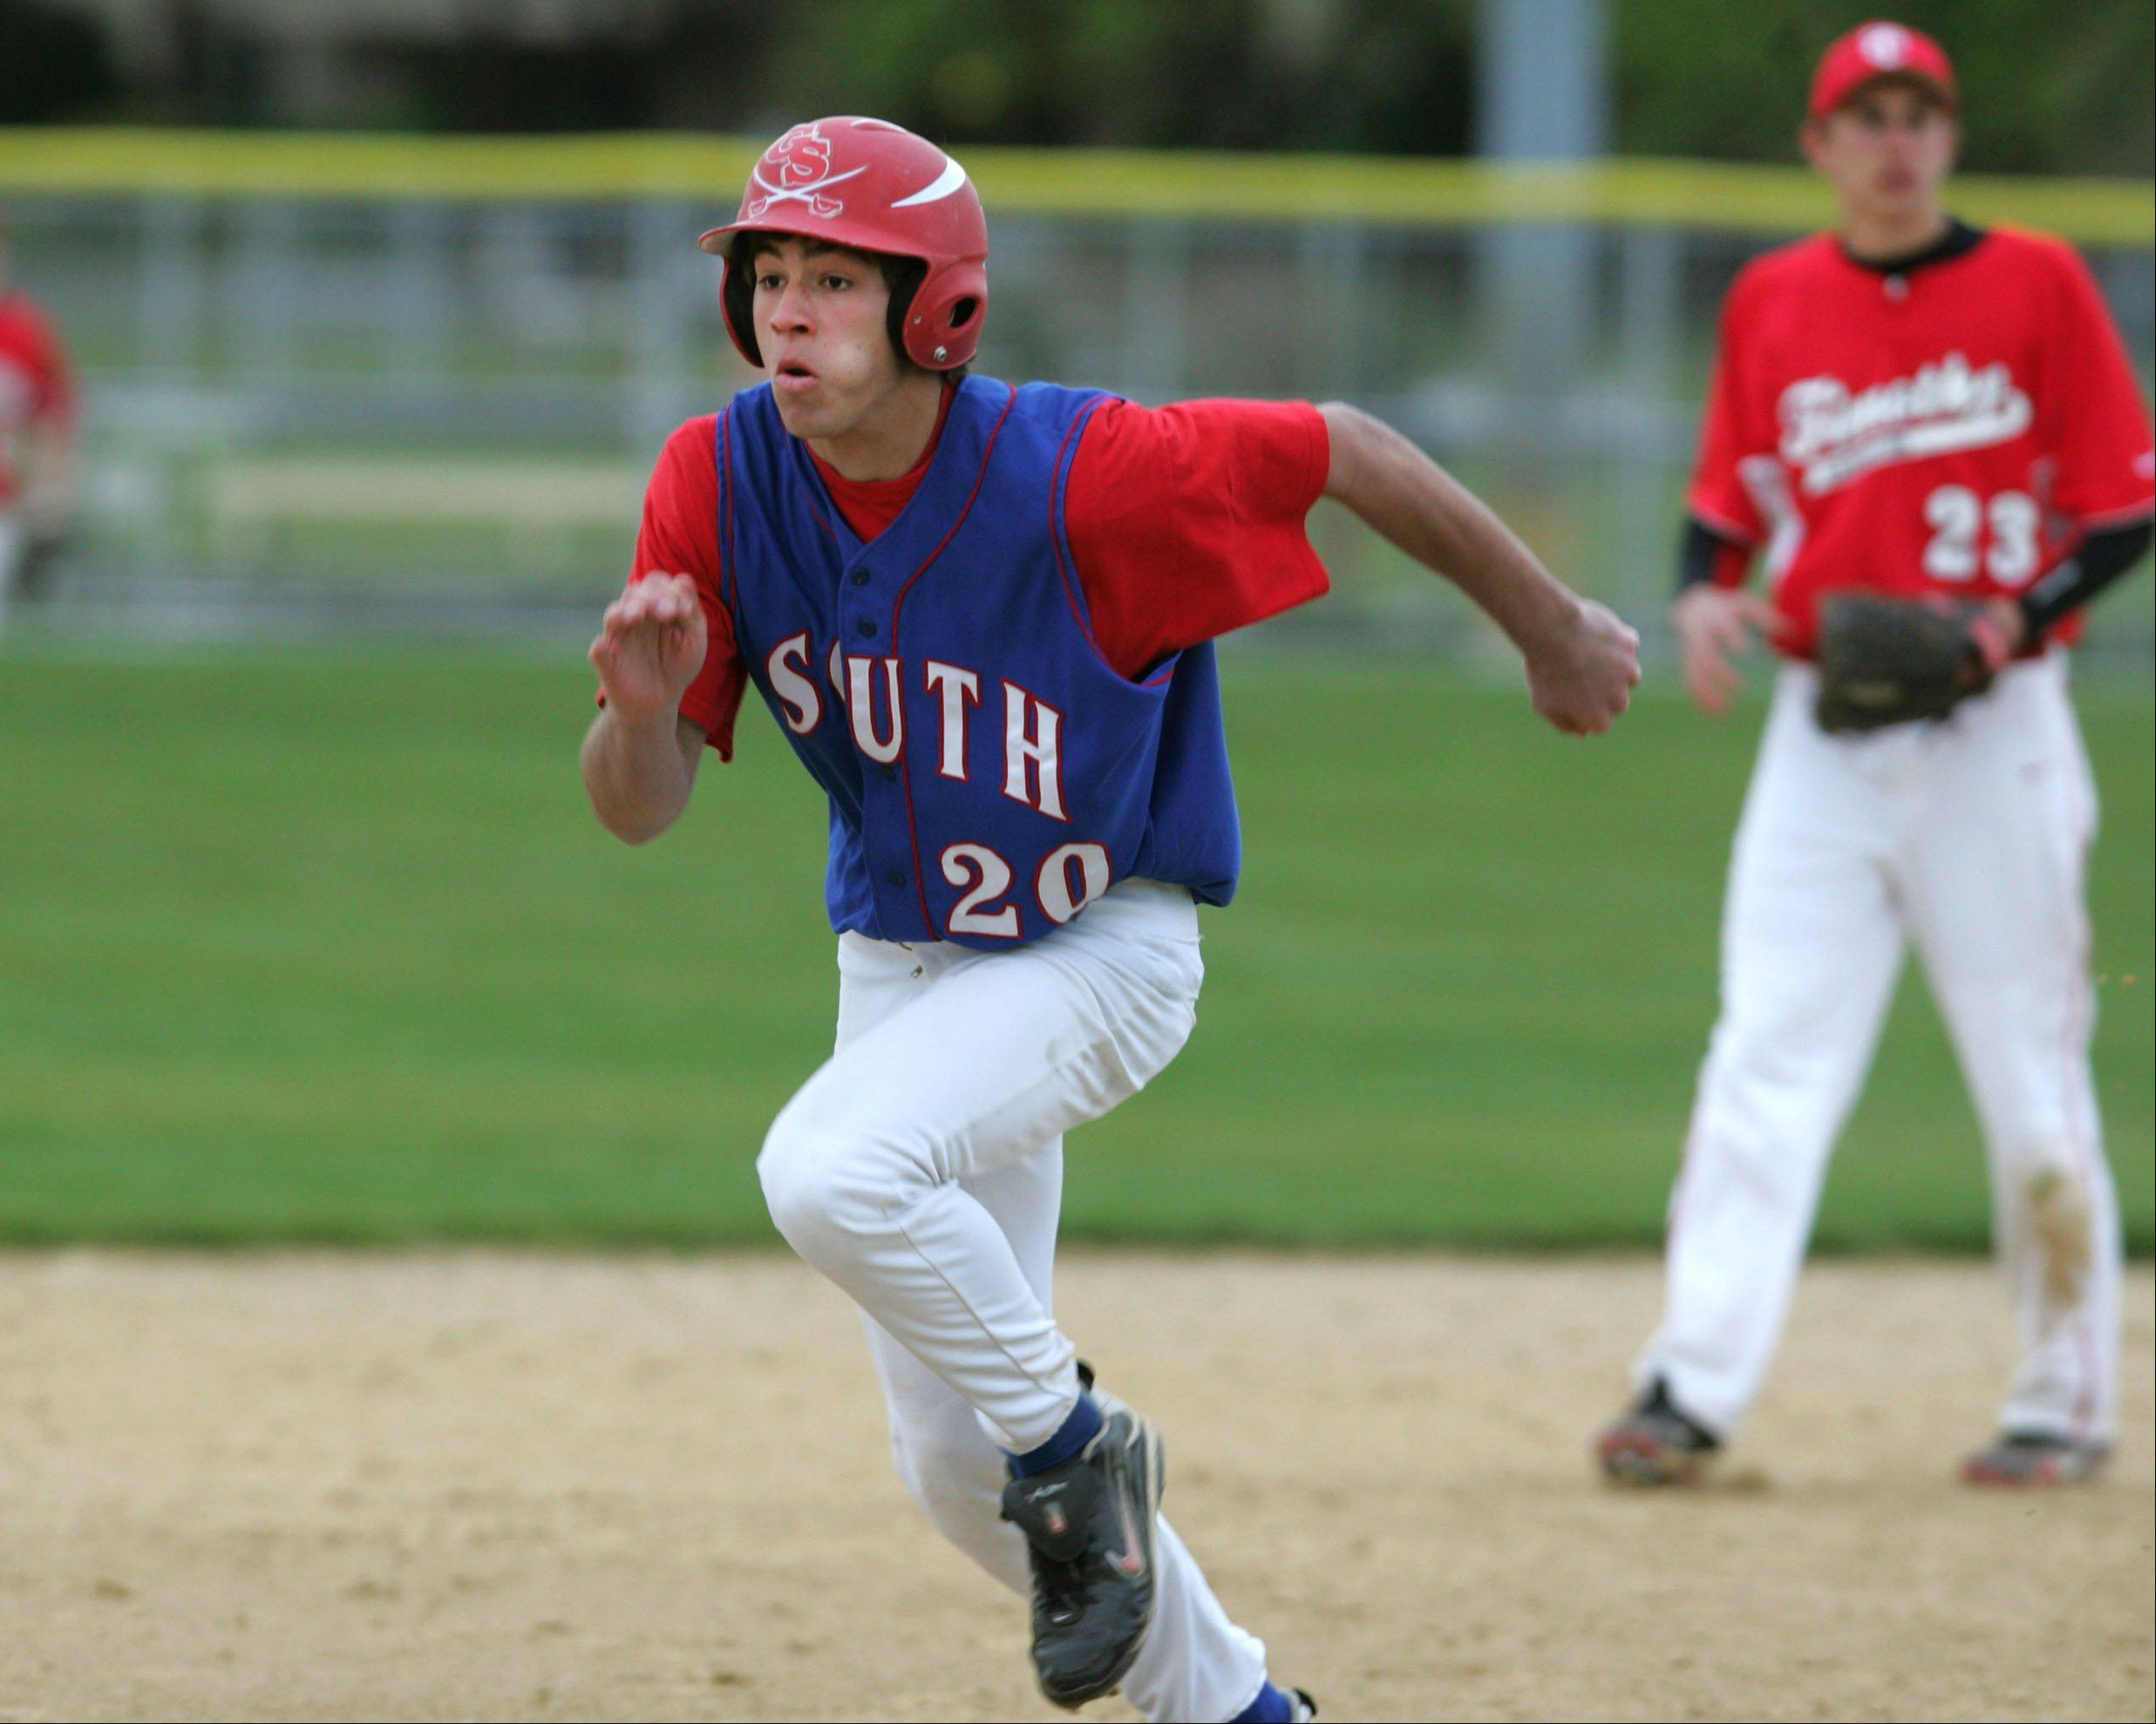 Glenbard South's Steven Straka advances to third base against Timothy Christian, during boys baseball action in Elmhurst.